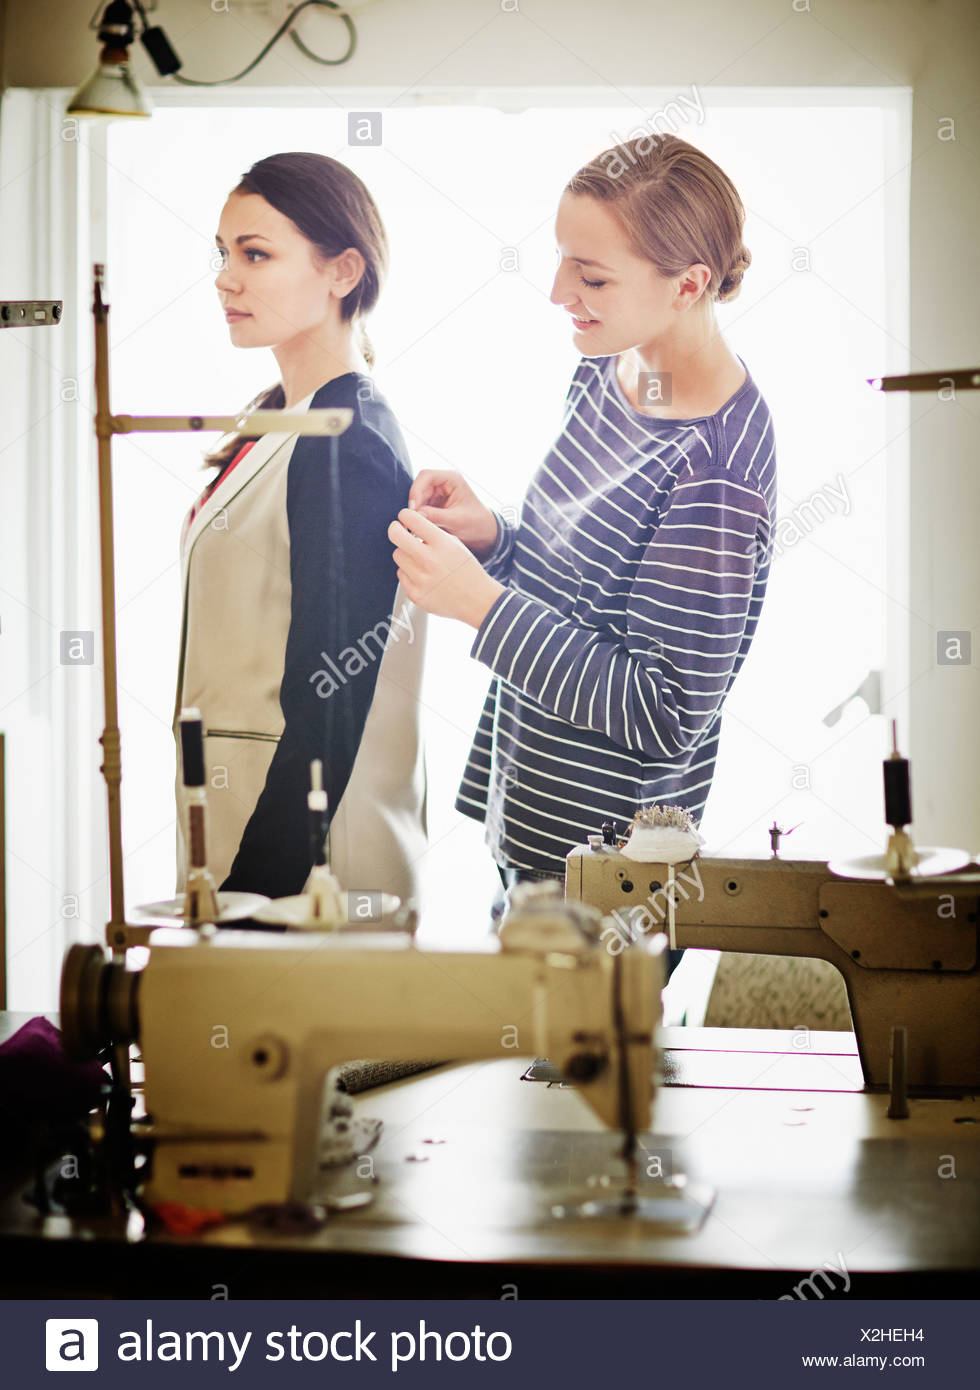 Seamstress adjusting woman's jacket - Stock Image